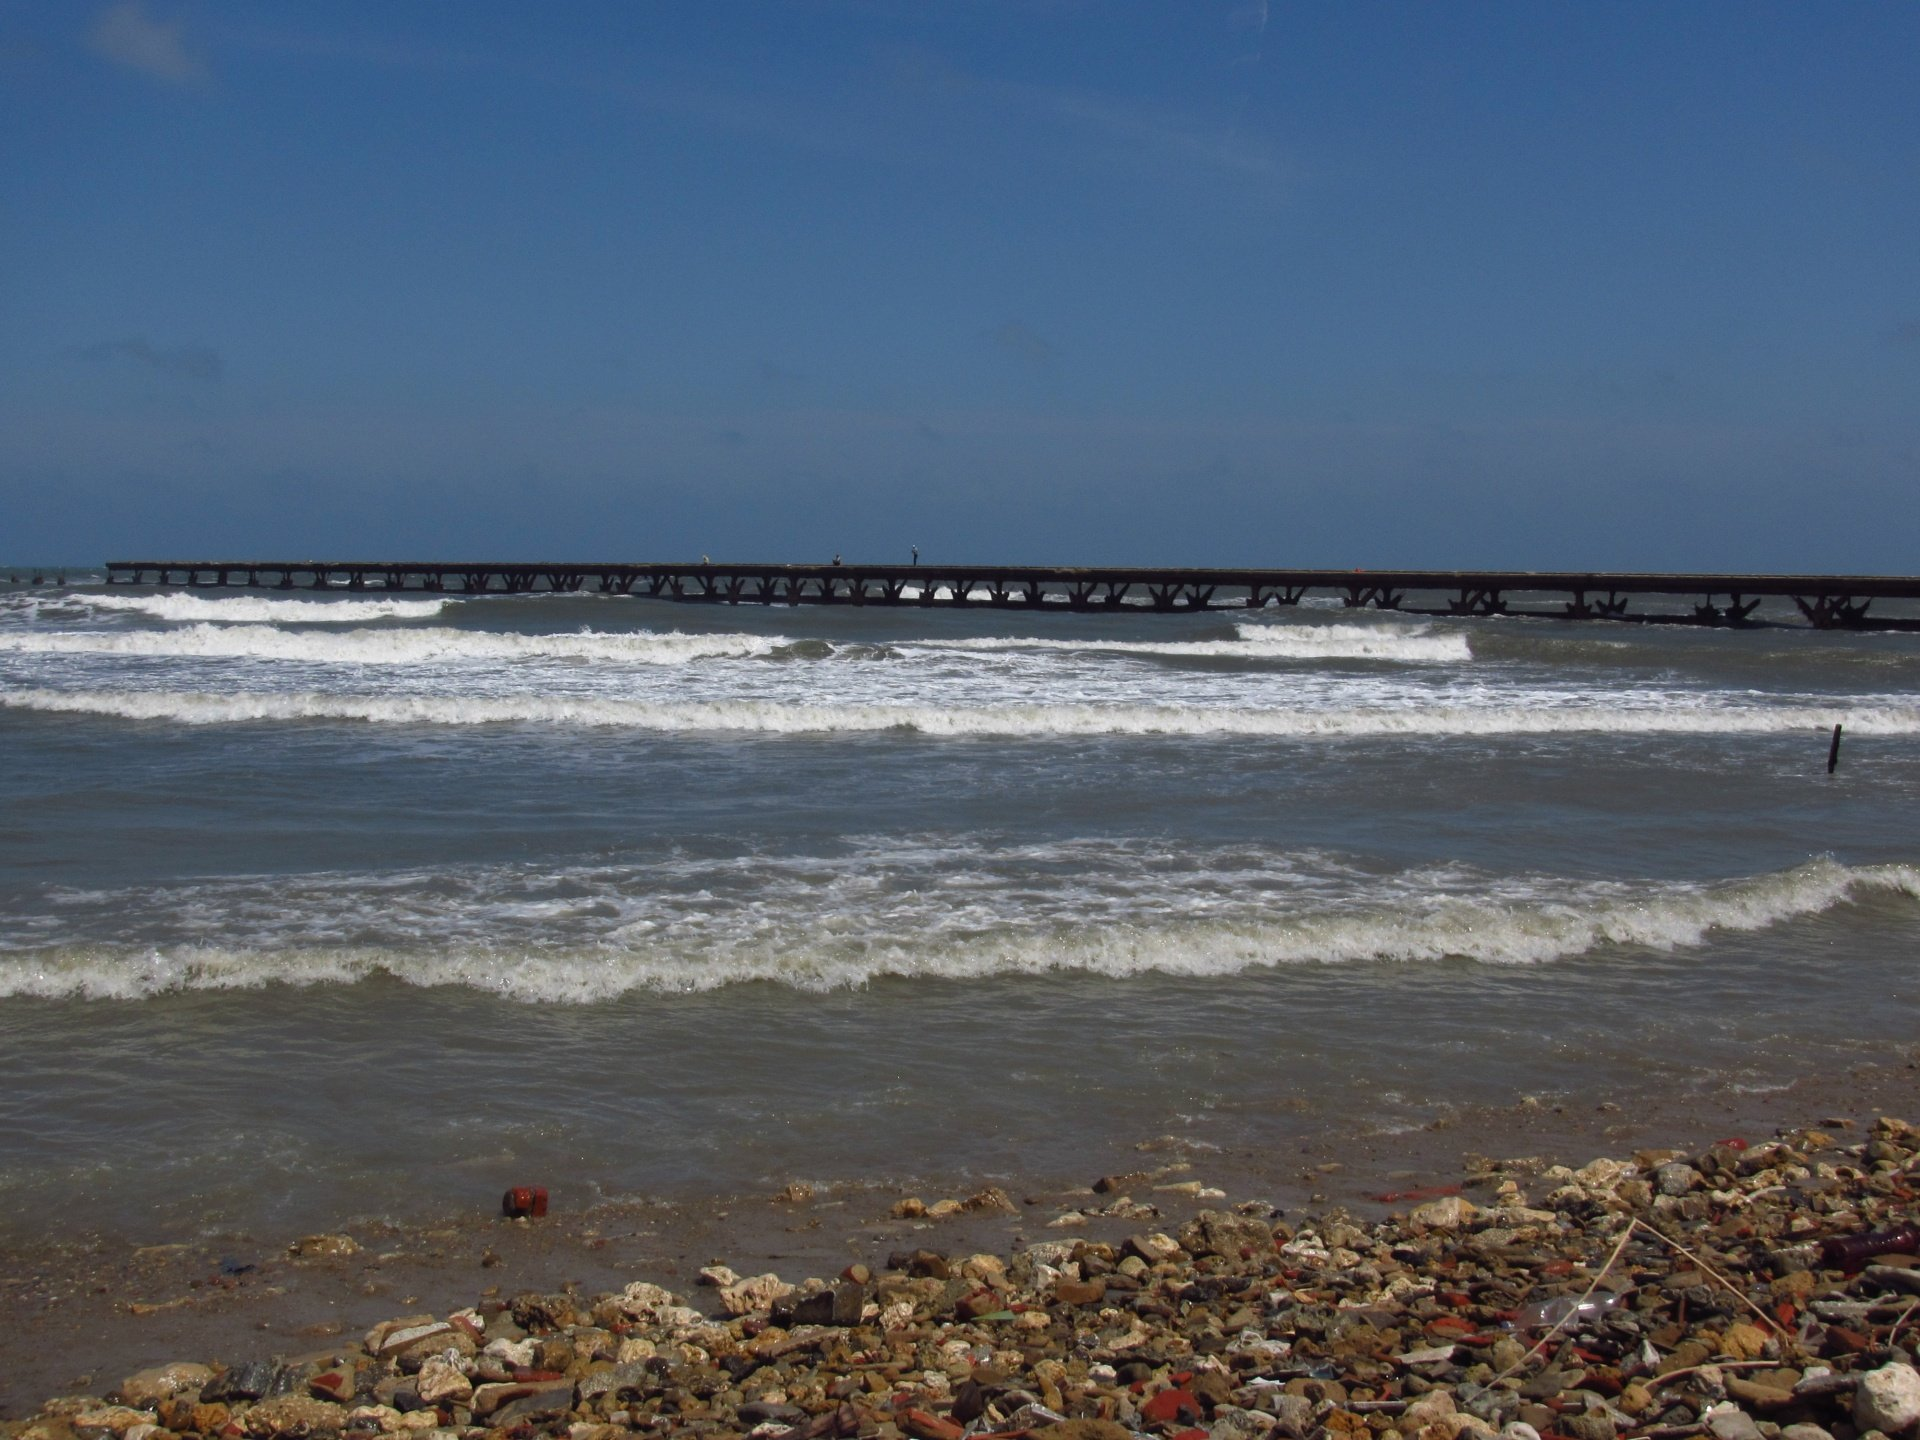 Bob D. Kemp's photo of El Muelle